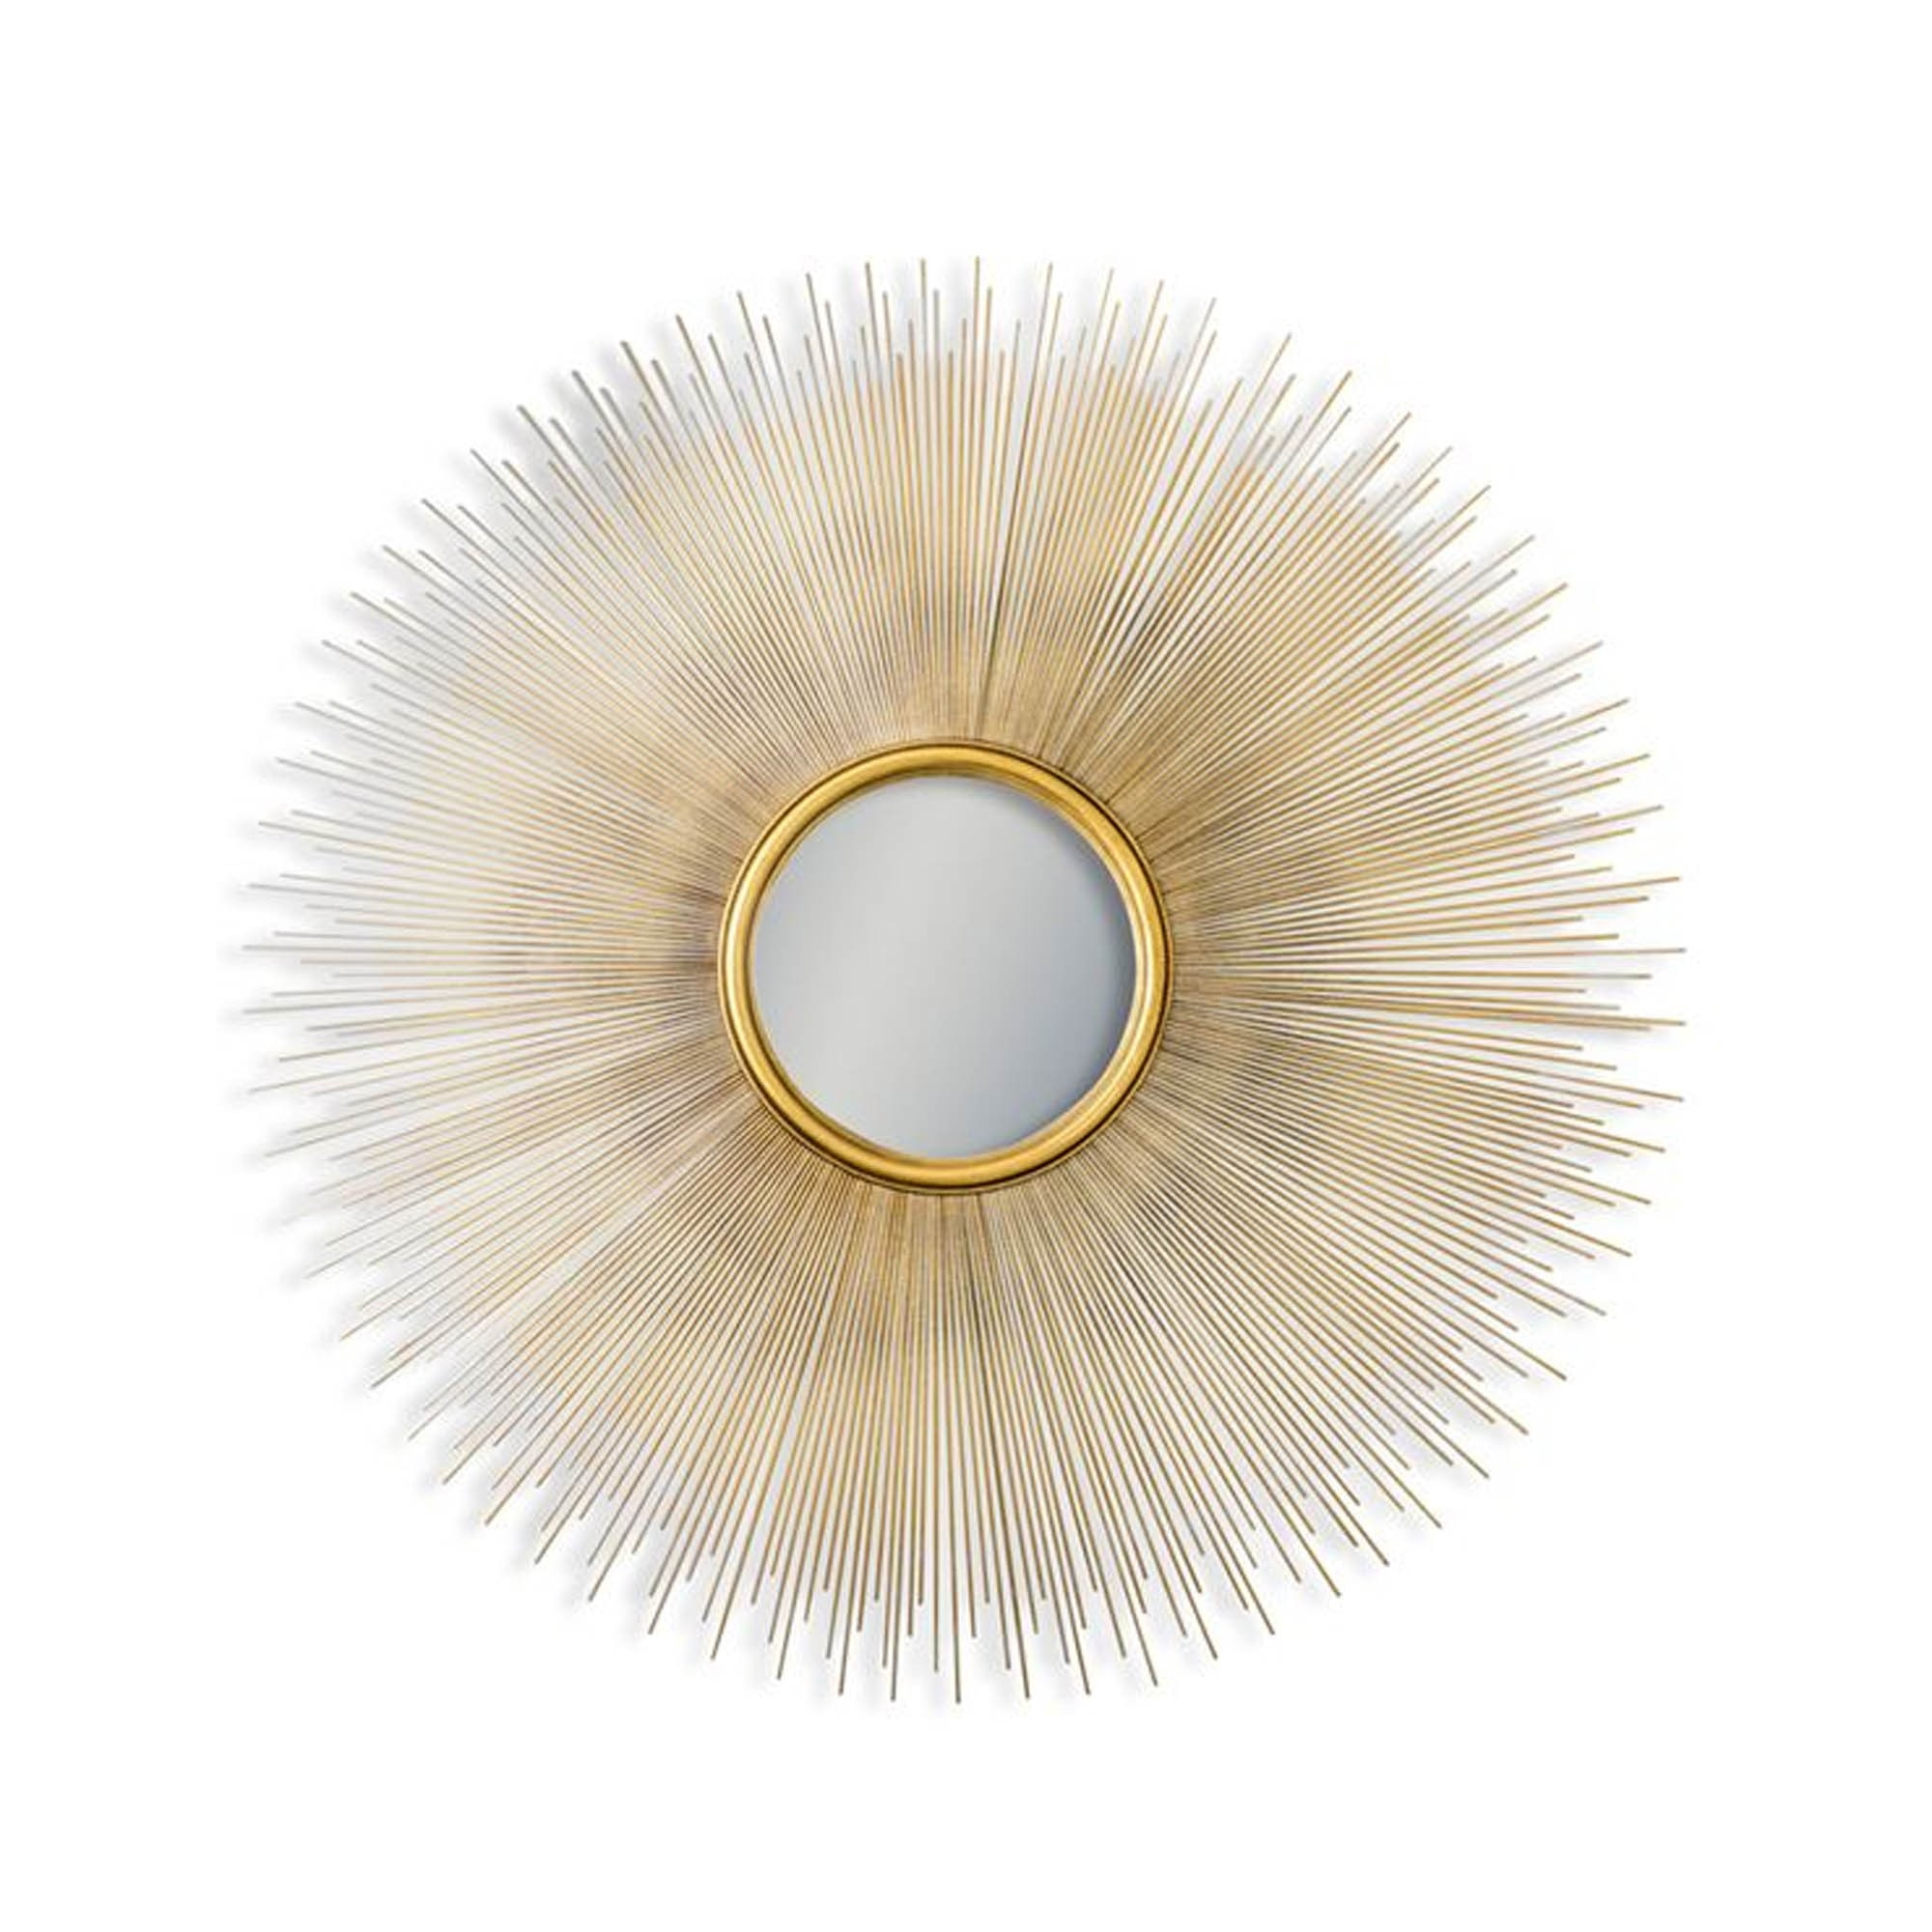 Antique Gold Sunburst Convex Wall Mirror Sunburst Wall Mirror